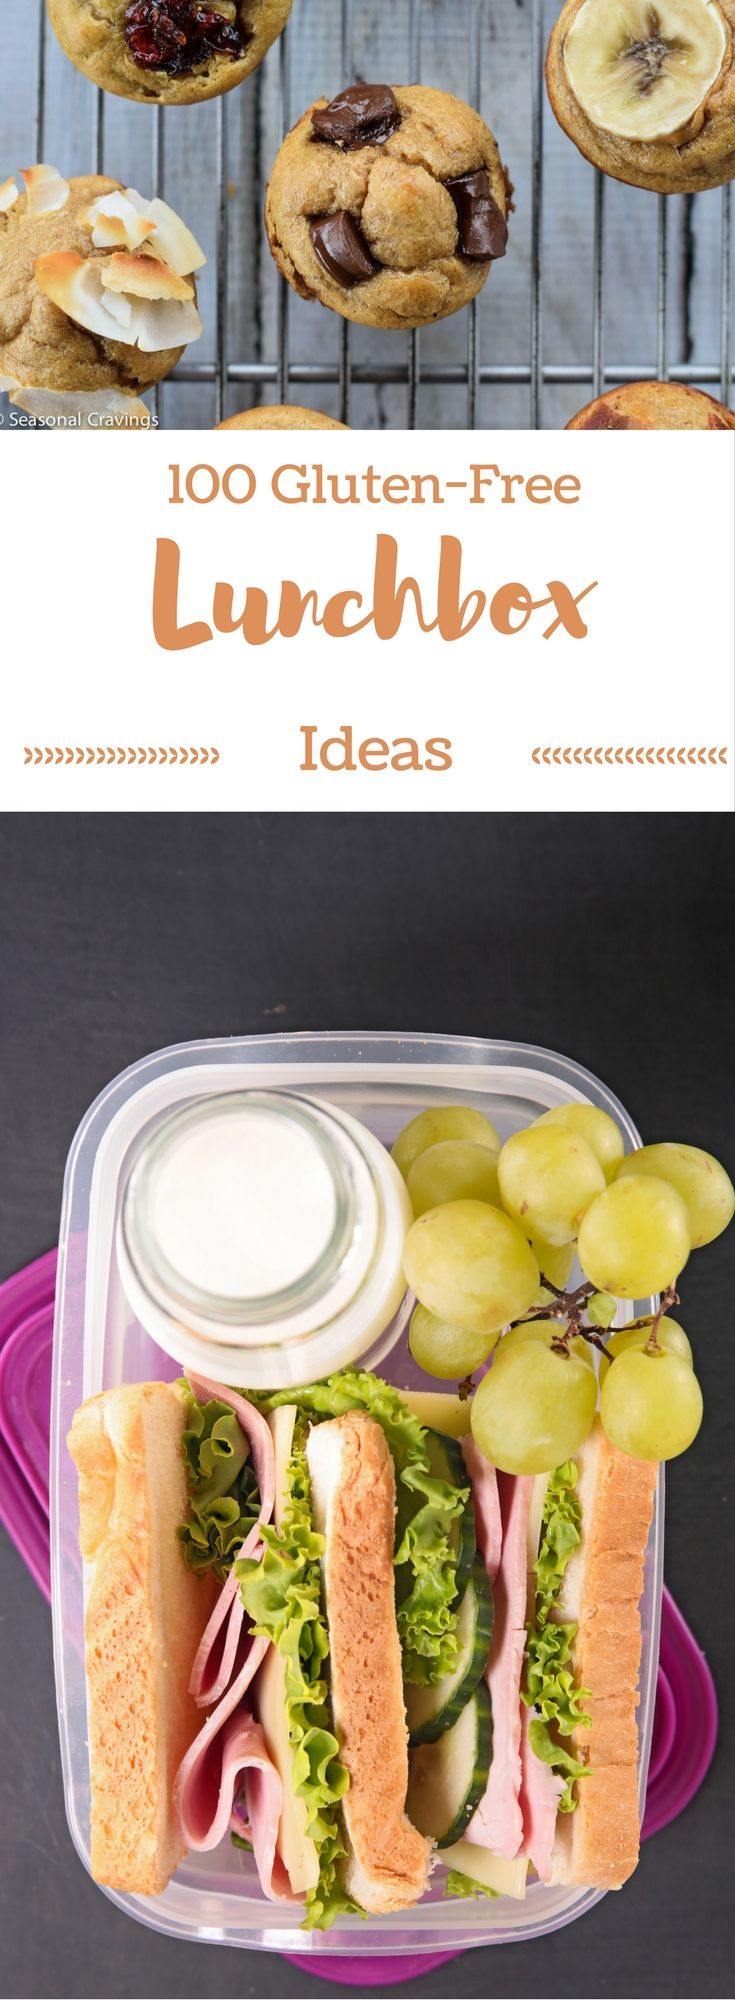 100 Gluten Free Lunchbox Ideas - Never worry about packing lunches again.  This is the ultimate resource for gluten free school lunch ideas!